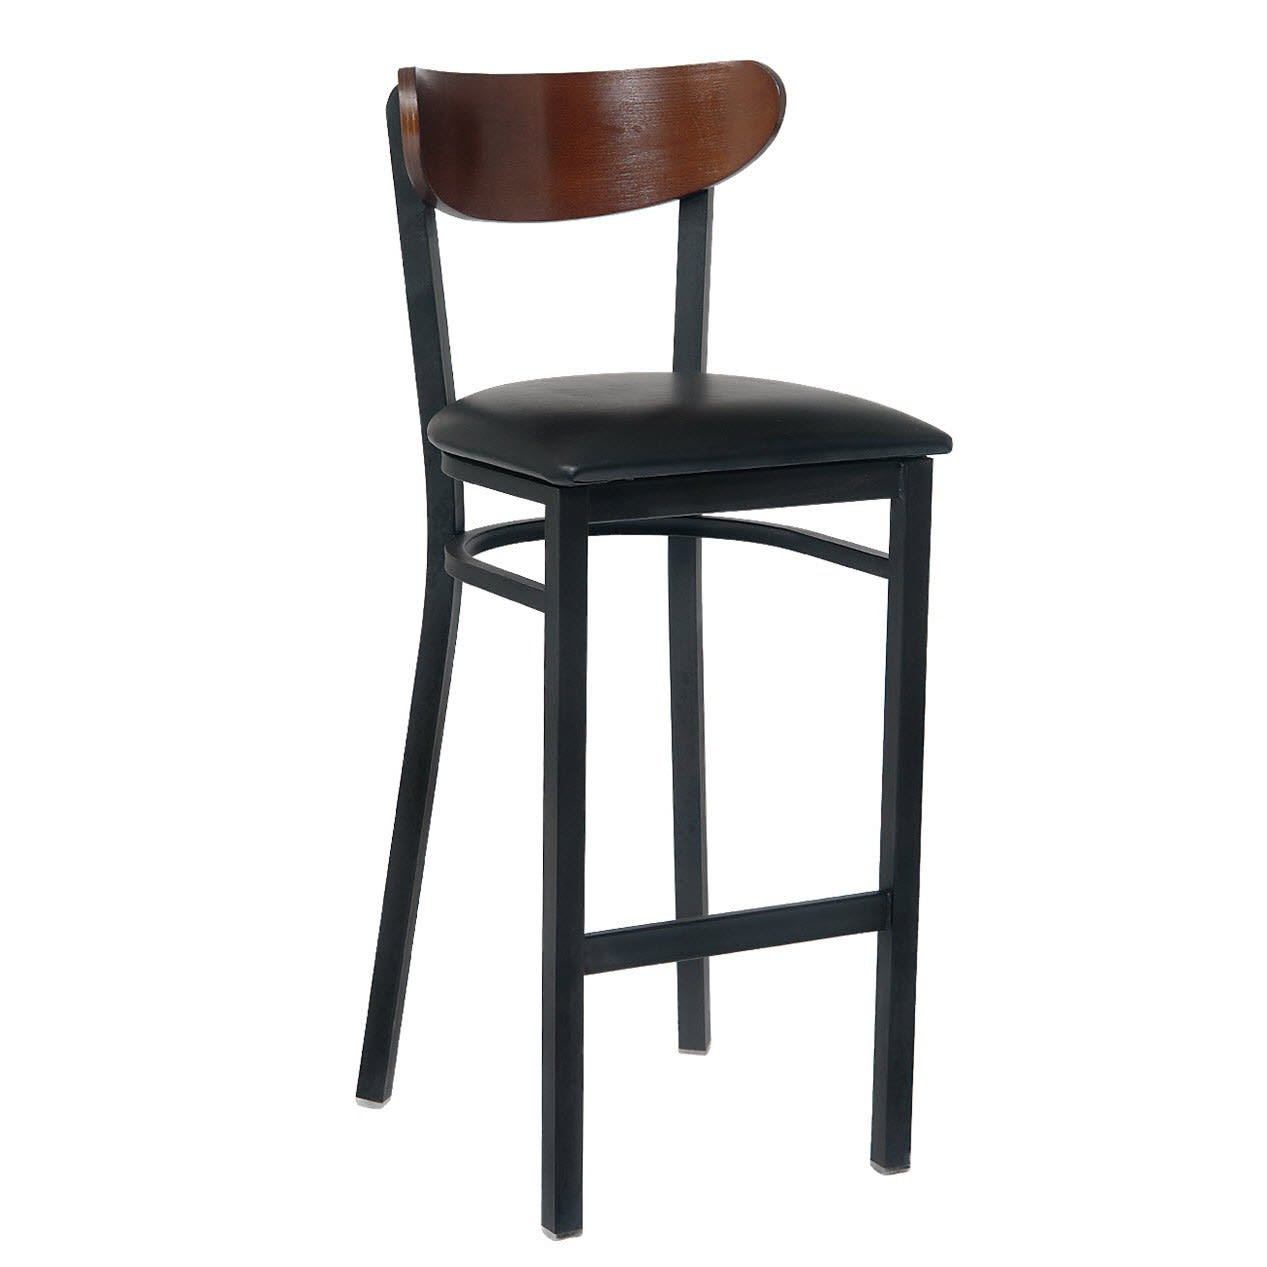 Modern Curved Back Metal Bar Stool